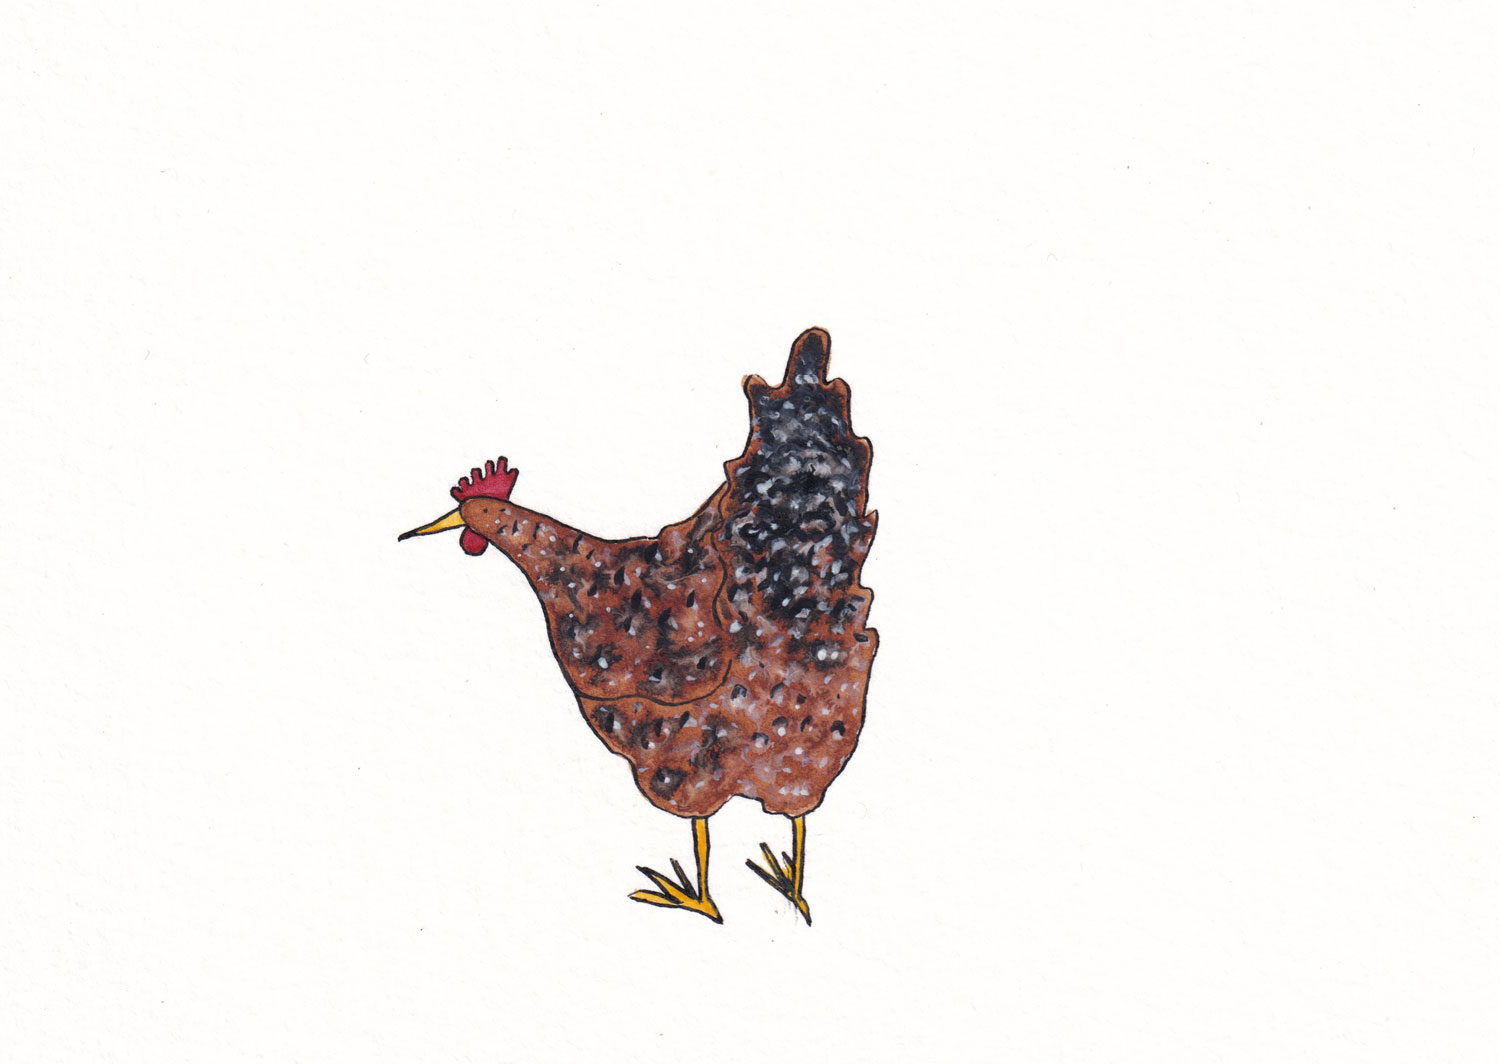 Illustration of a hen with a fluffy butt